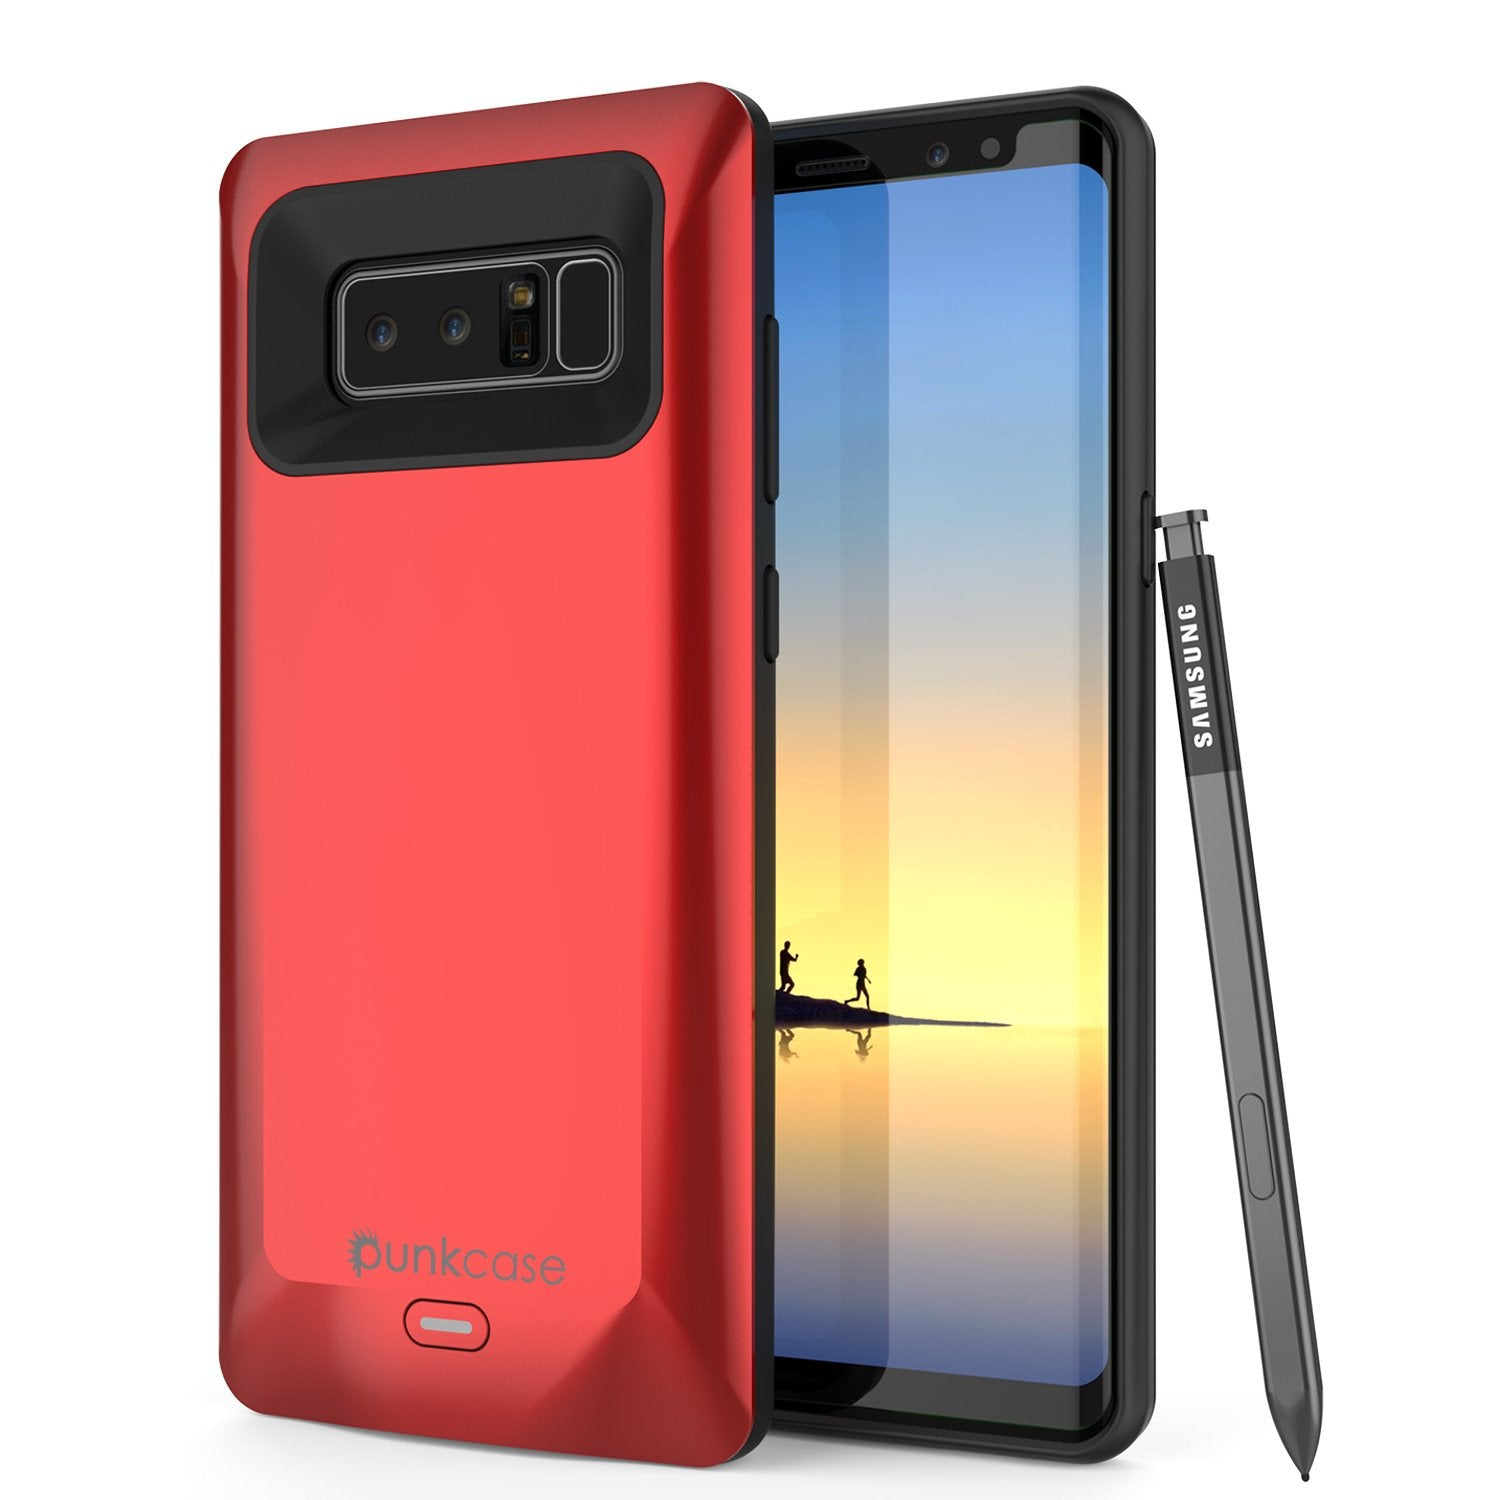 Galaxy Note 8 Battery PunkCase, 5000mAH Charger Case W/USB port, Red